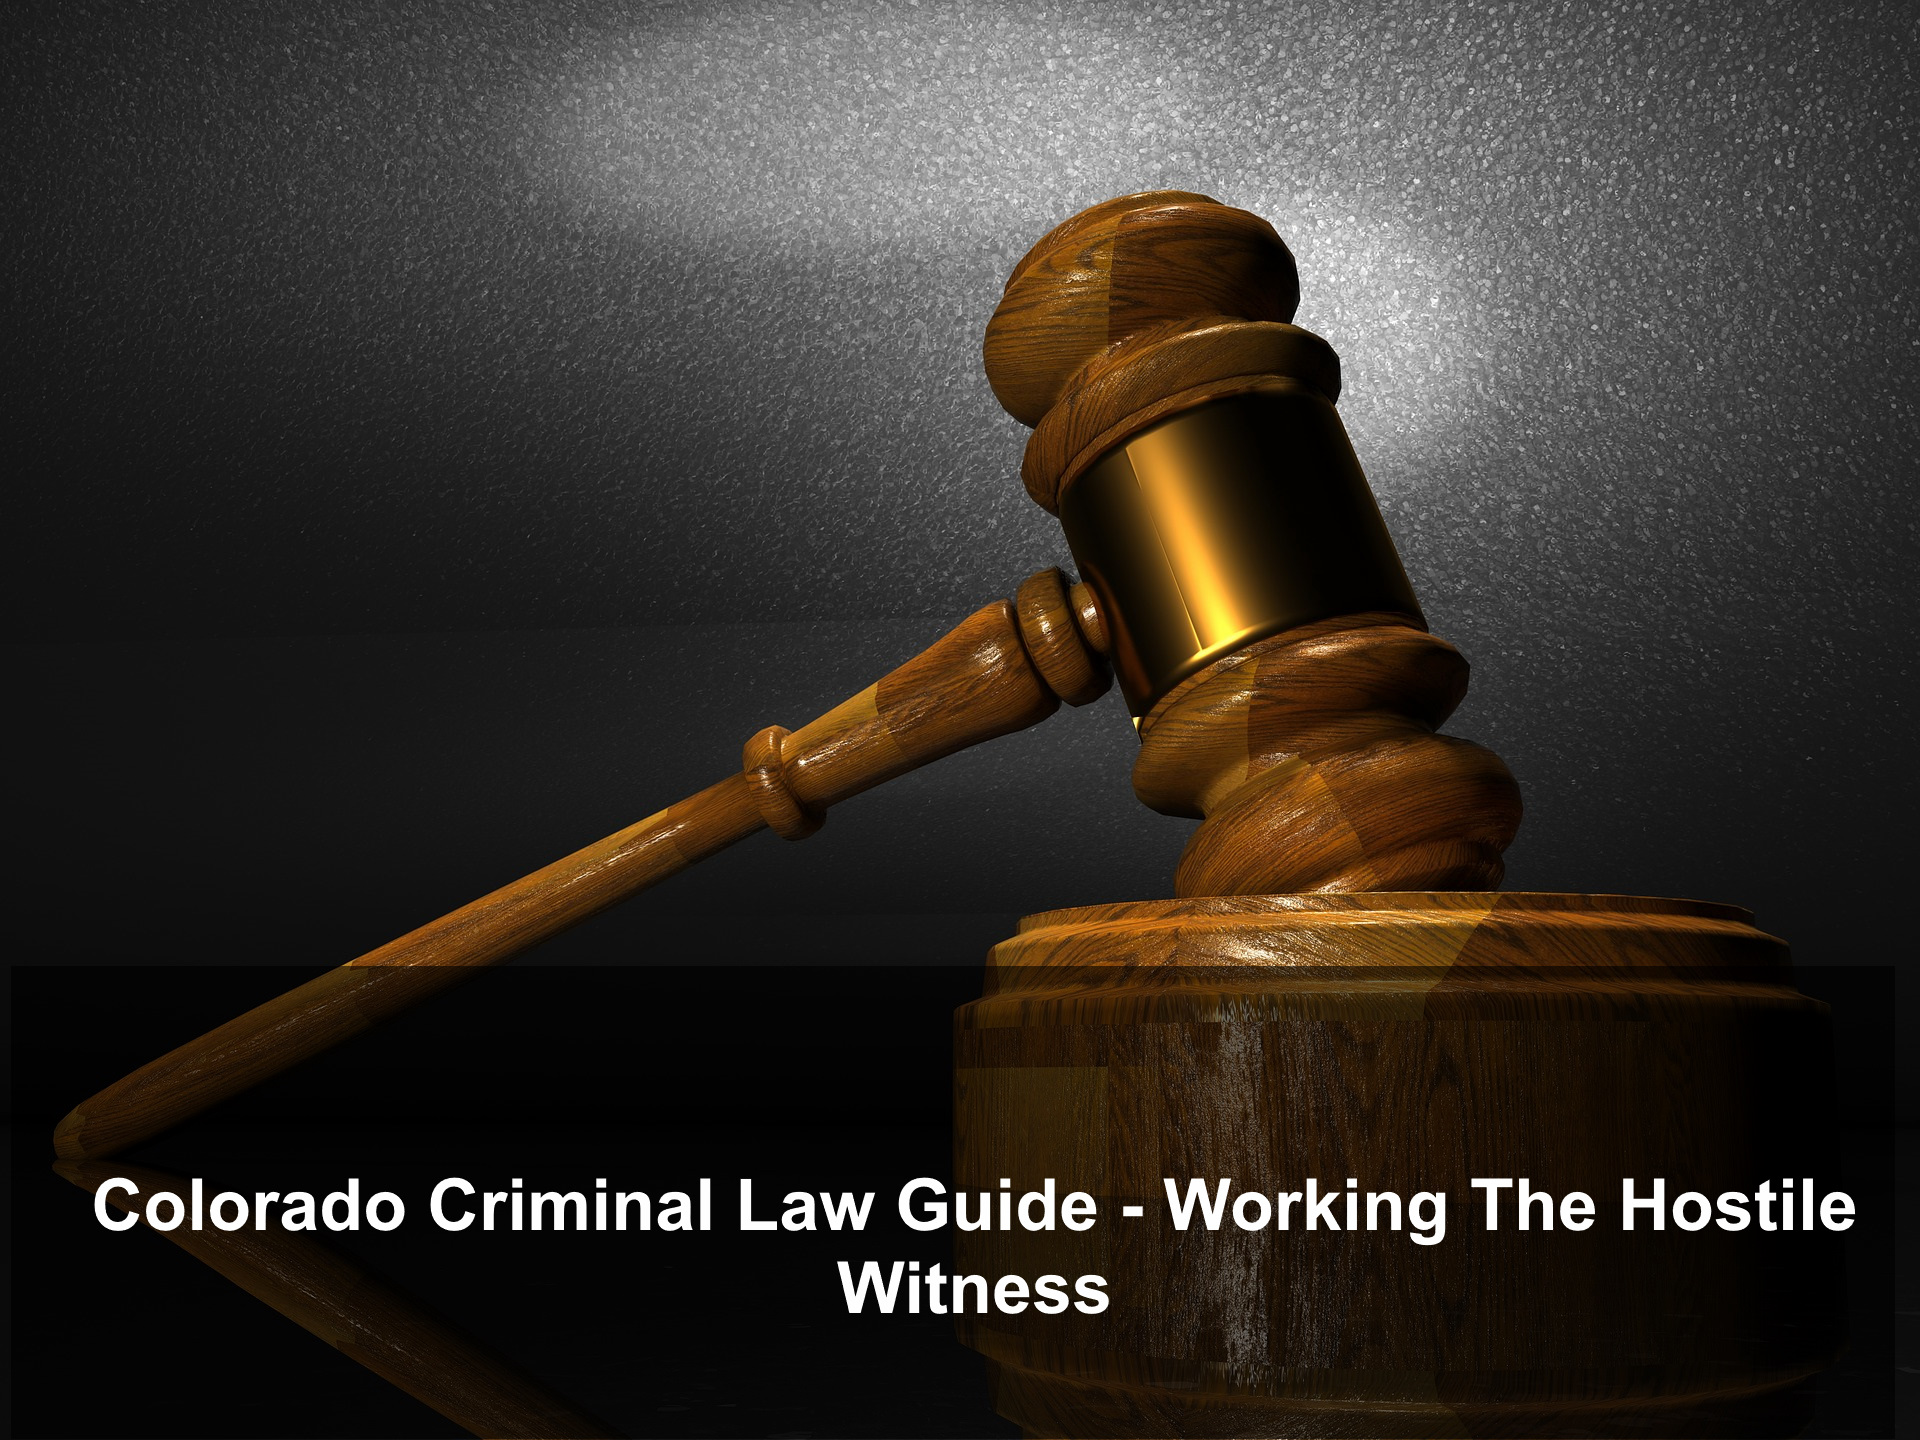 Colorado Criminal Law Guide - Working The Hostile Witness